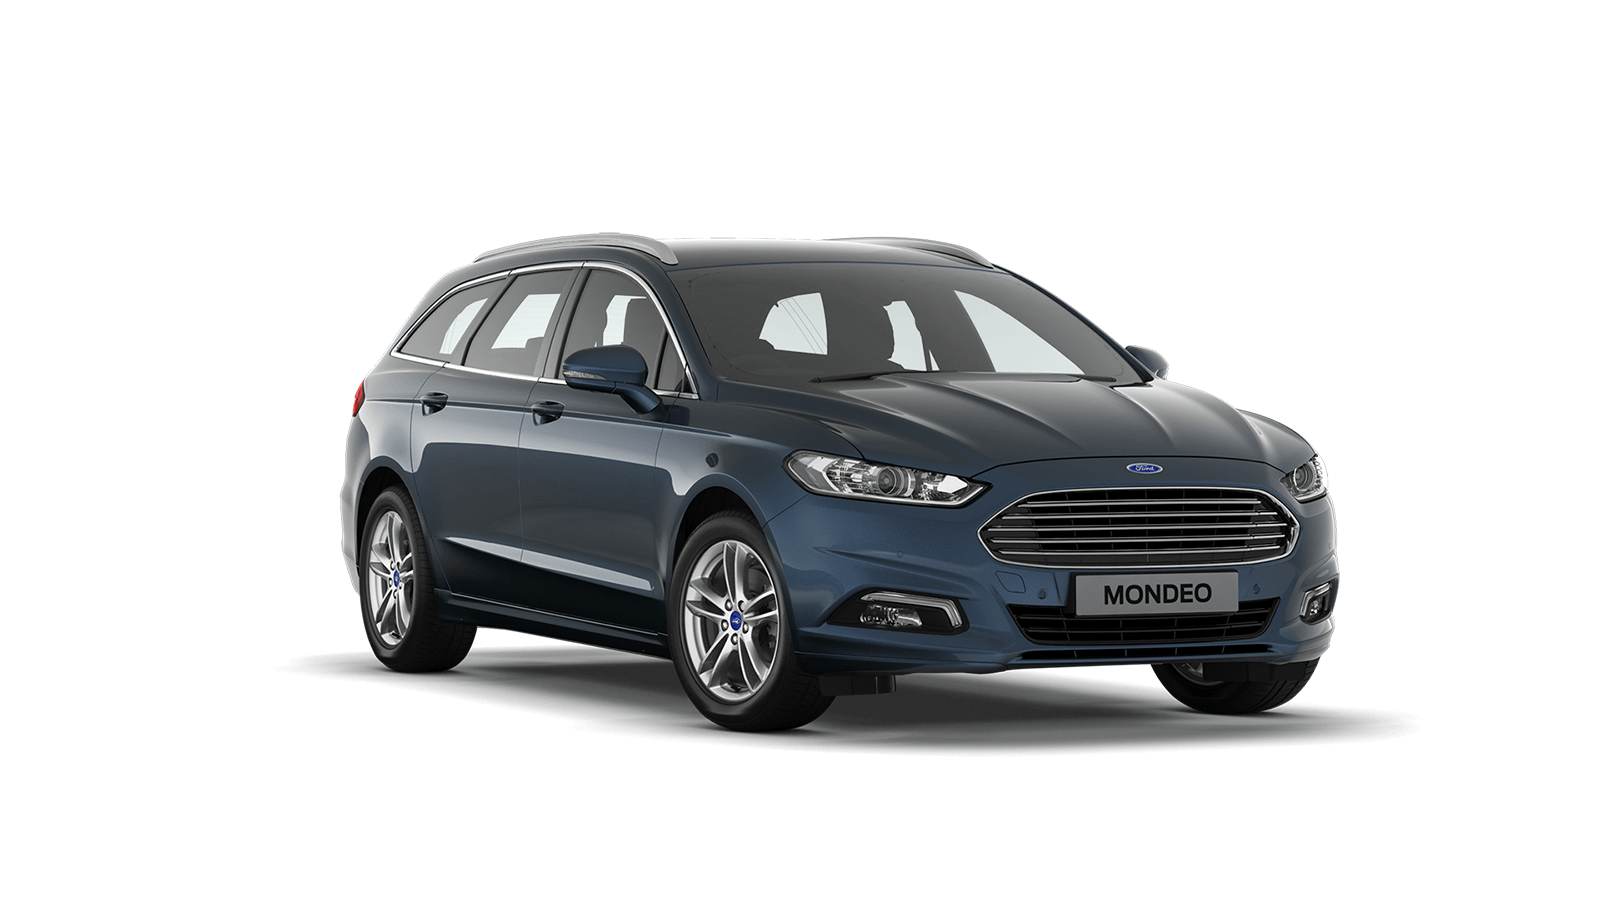 https://www.dealerinternet.co.uk/images/MONDEO%20(CD345)/2018.75/Estate/ZetecEdition/CHROME-BLUE.png